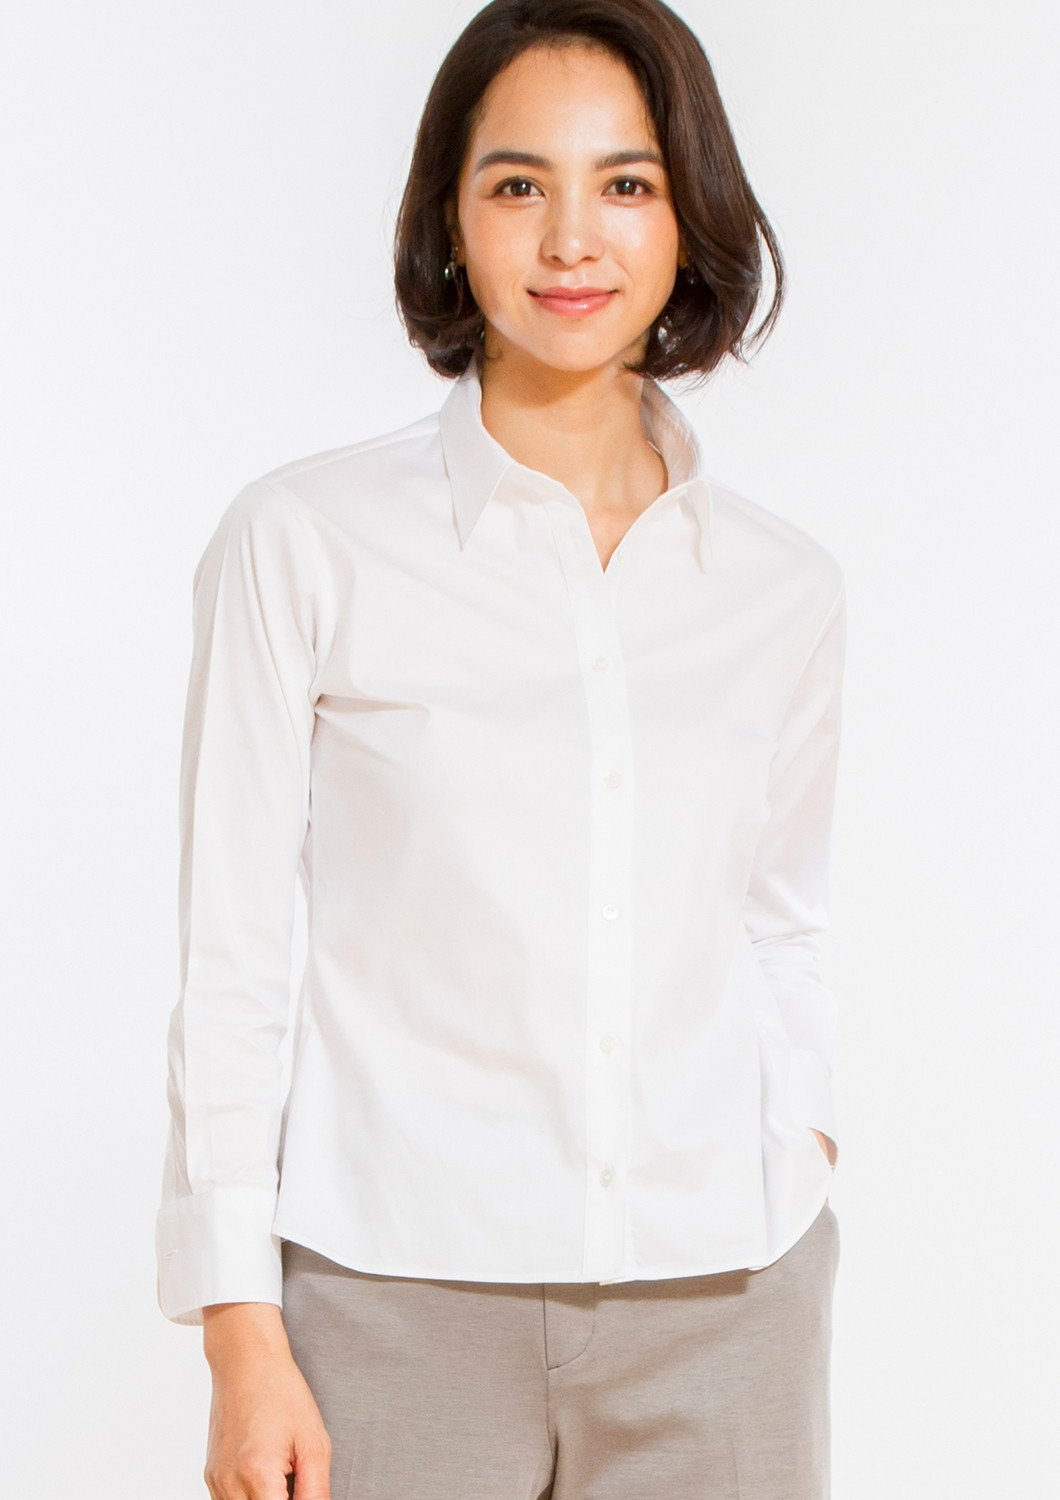 Premium Stretch & Easy Care Untucked White Twill Shirt - LEONIS SHIRTS & FAVORITES